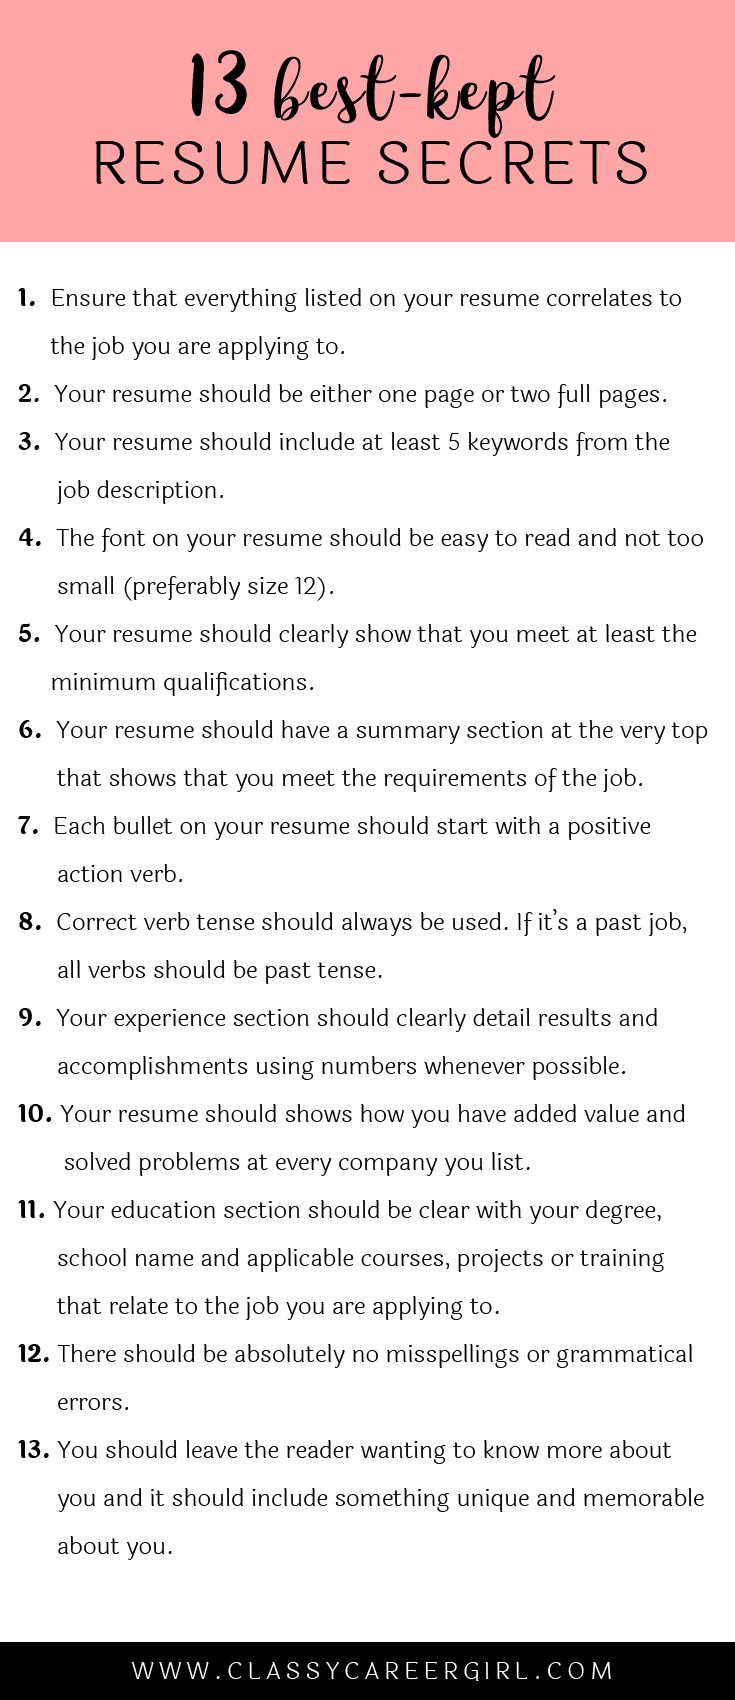 Opposenewapstandardsus  Splendid  Ideas About Resume On Pinterest  Cv Format Resume Cv And  With Outstanding Some Hiring Managers Will Toss Your Resume Out If You Dont Know These  With Nice Onet Resume Also Resume Videos In Addition Resume Warehouse Worker And Flight Instructor Resume As Well As Service Delivery Manager Resume Additionally Linkedin Resume Template From Pinterestcom With Opposenewapstandardsus  Outstanding  Ideas About Resume On Pinterest  Cv Format Resume Cv And  With Nice Some Hiring Managers Will Toss Your Resume Out If You Dont Know These  And Splendid Onet Resume Also Resume Videos In Addition Resume Warehouse Worker From Pinterestcom